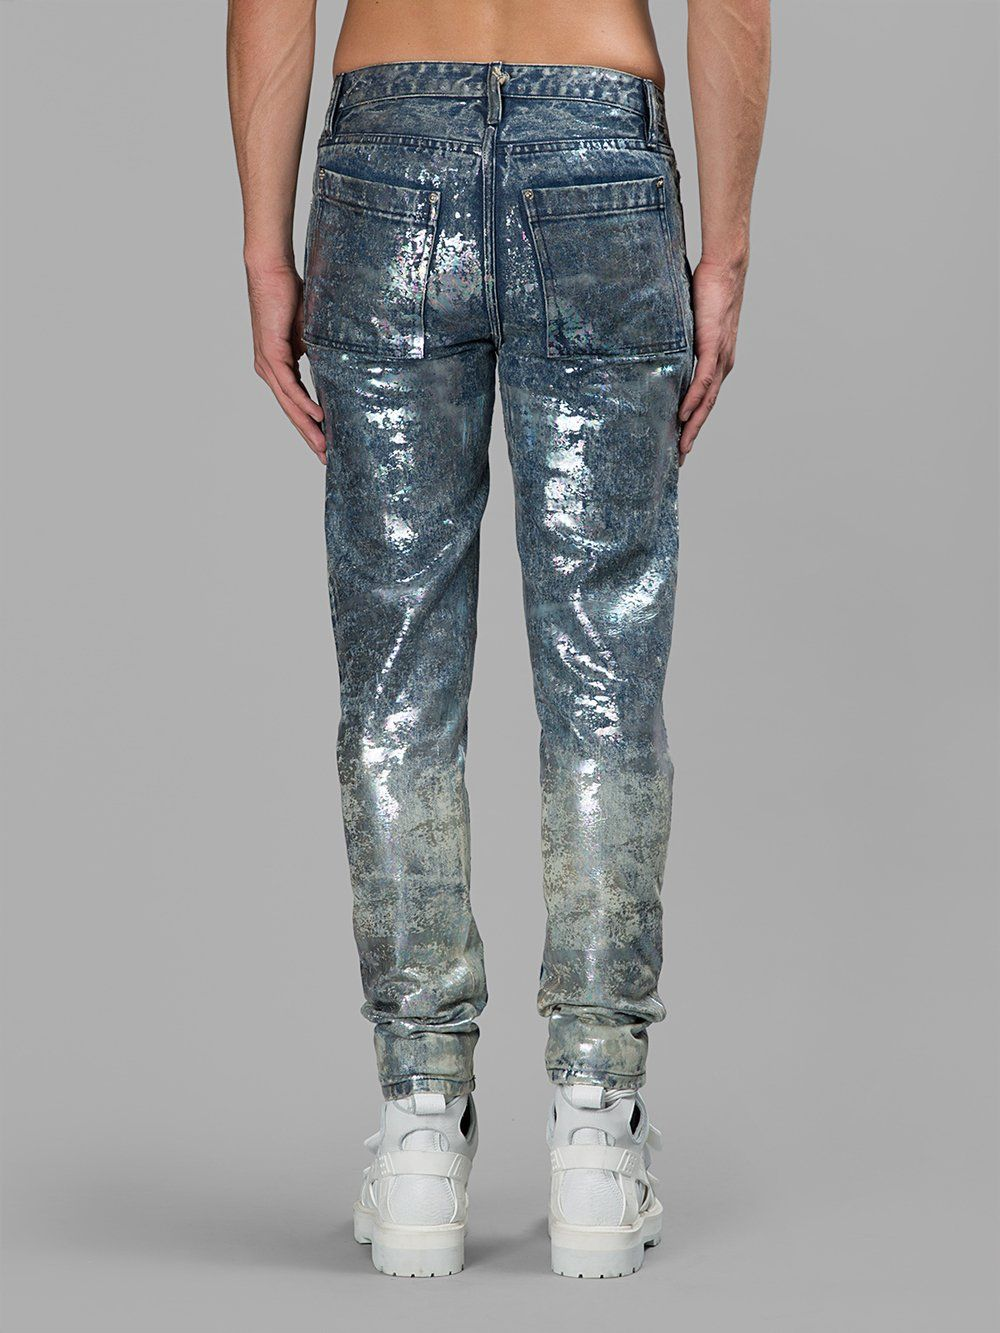 HOOD BY AIR - Jeans - Antonioli.eu